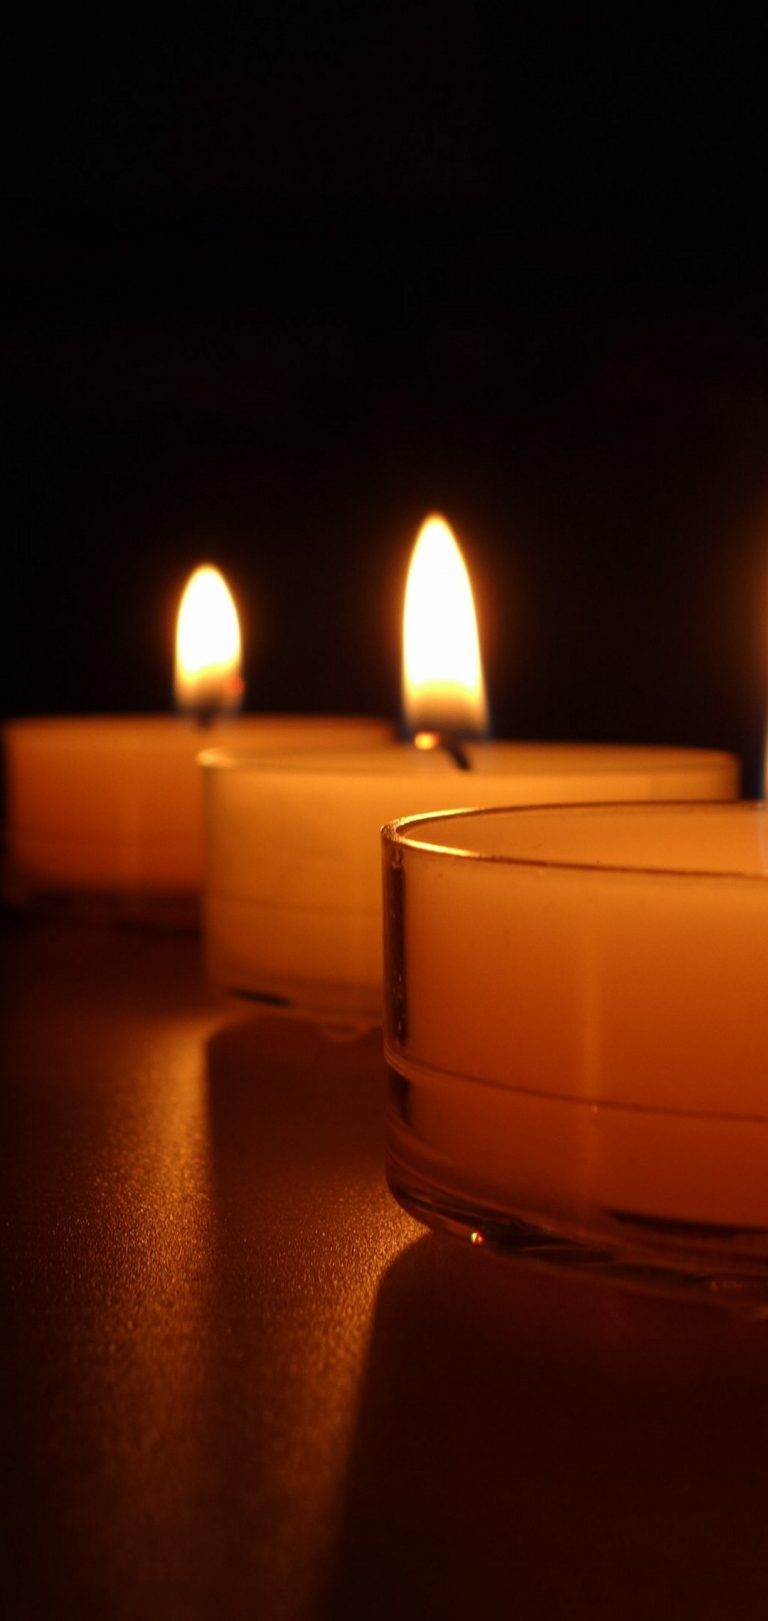 Candle Wallpaper 1080x2280 768x1621